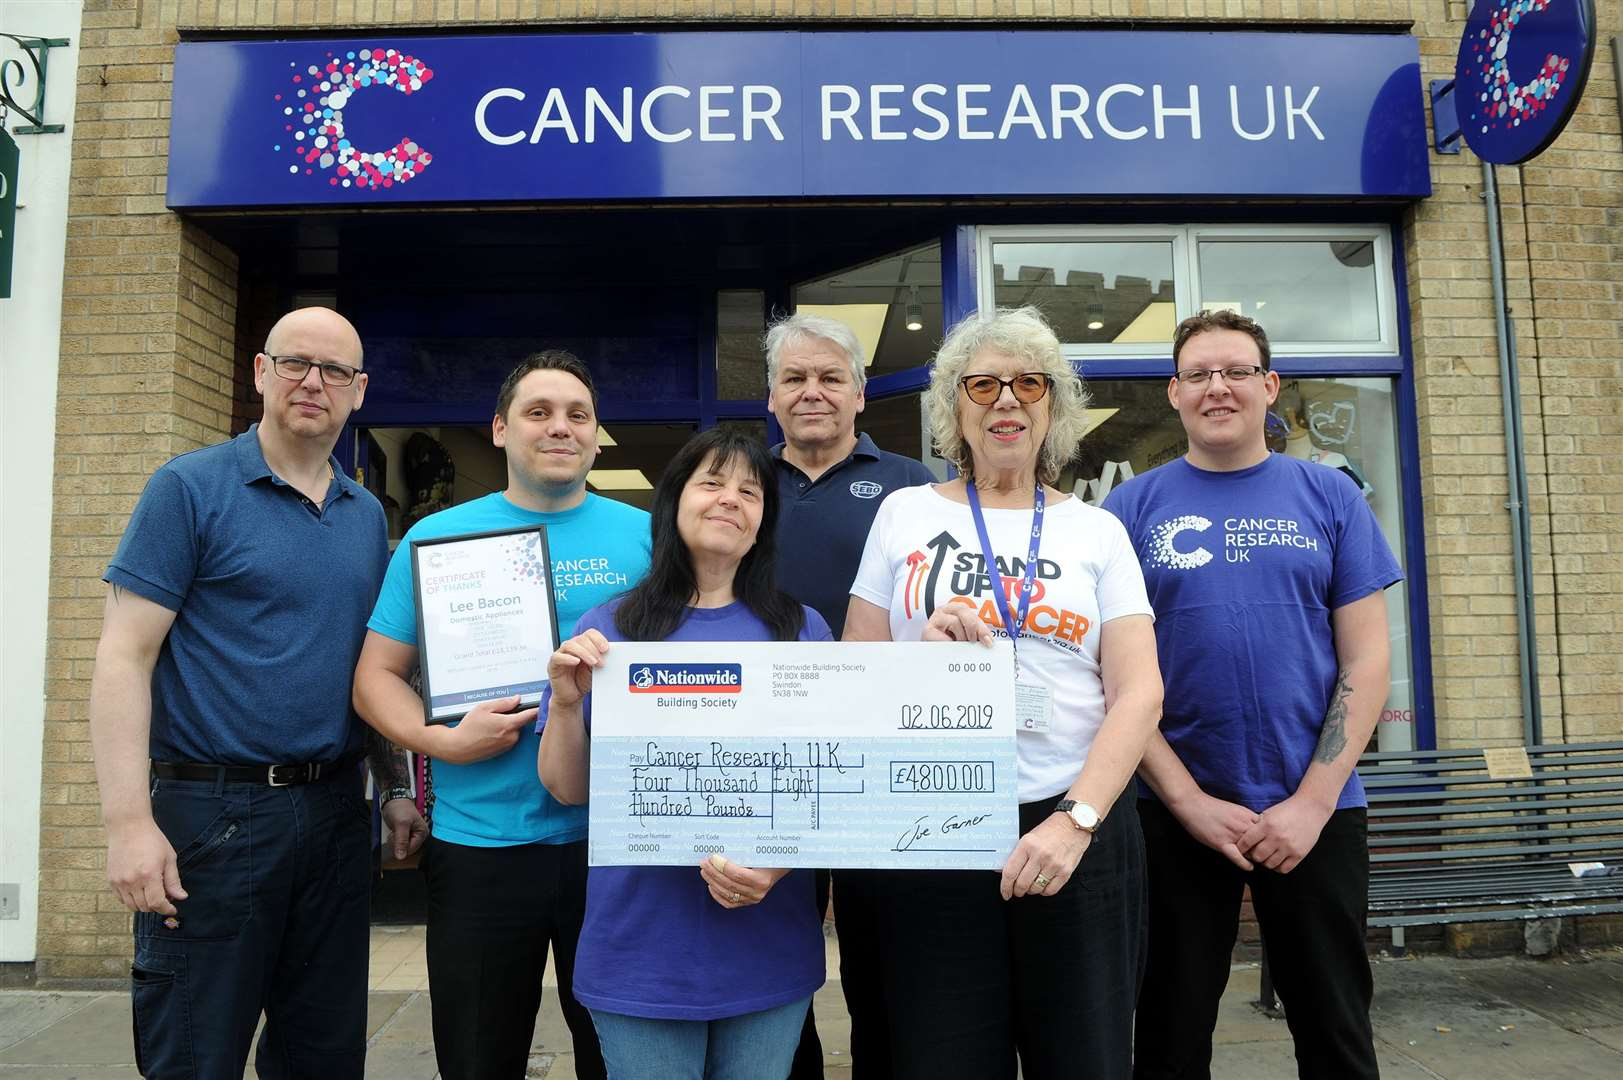 Domestic Appliances in Sudbury is handing over a cheque for £4,800 to Cancer Research UK, which was raised during a charity football match...Pictured: Phil Wood (Manager at Cancer research UK Sudbury), Lee Bacon (Domestic Appliances Manager), Karen and Neil Bacon (Director), Ivy Pond (Volunteer fundraiser at Cancer Research UK Sudbury) and Shane Johnson (Colleague at Domestic Appliances) ...PICTURE: Mecha Morton. (13842104)